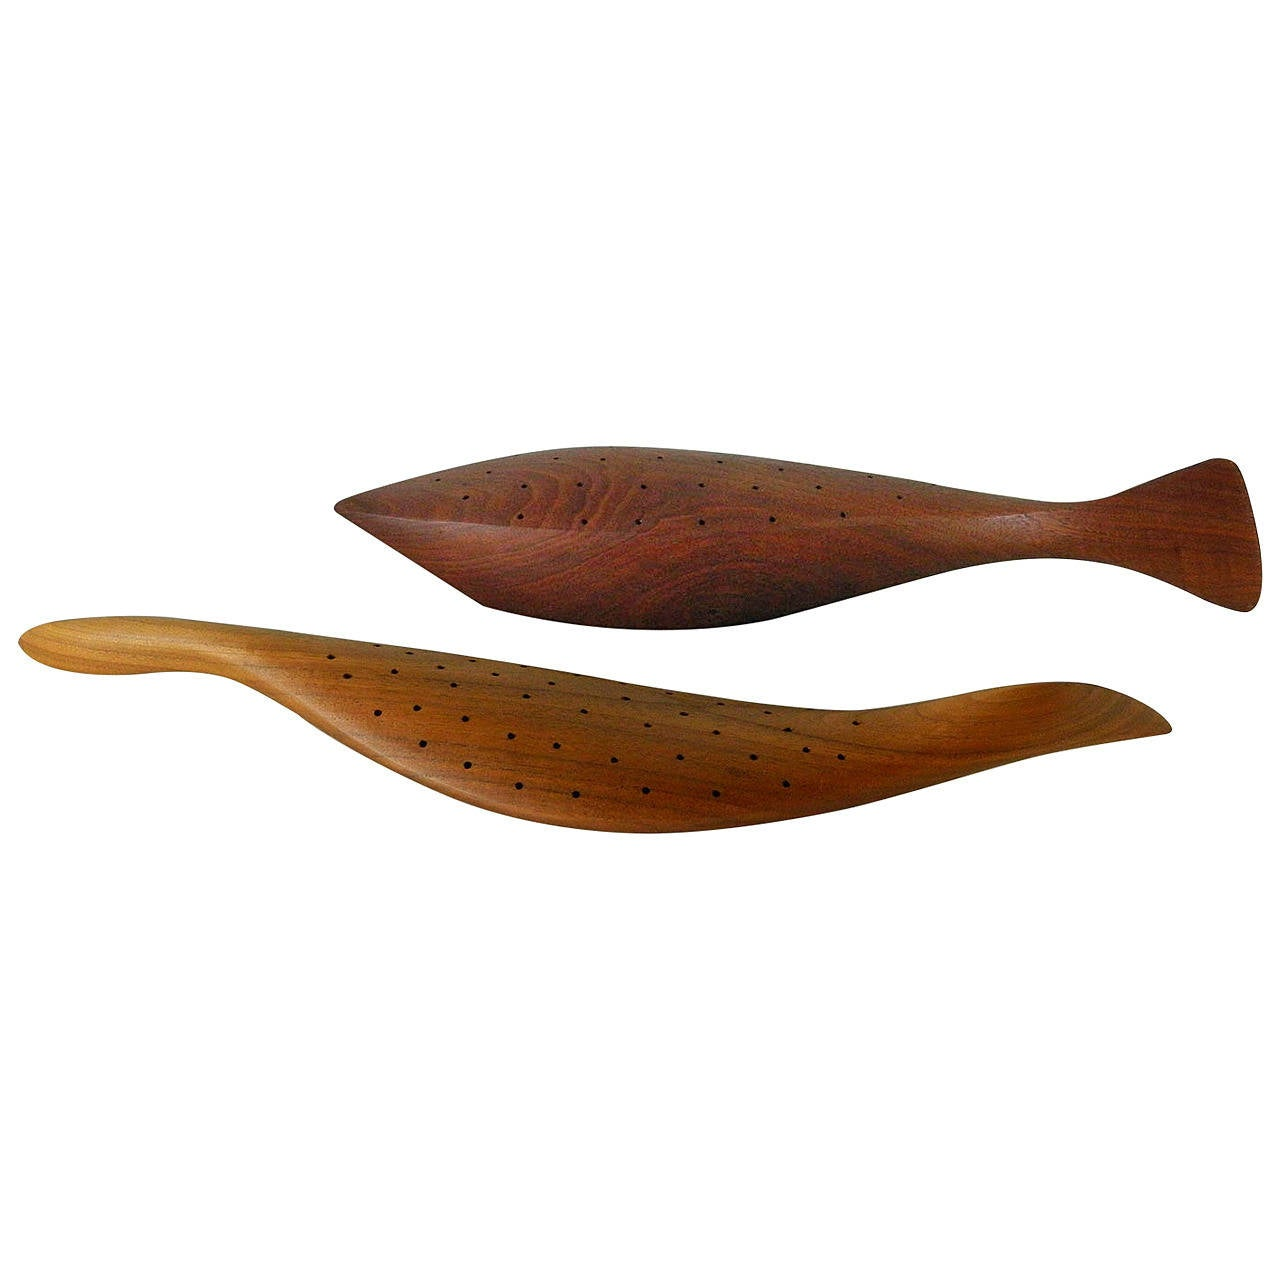 Emil milan carved wooden fish and bird canape holders at for Canape holders